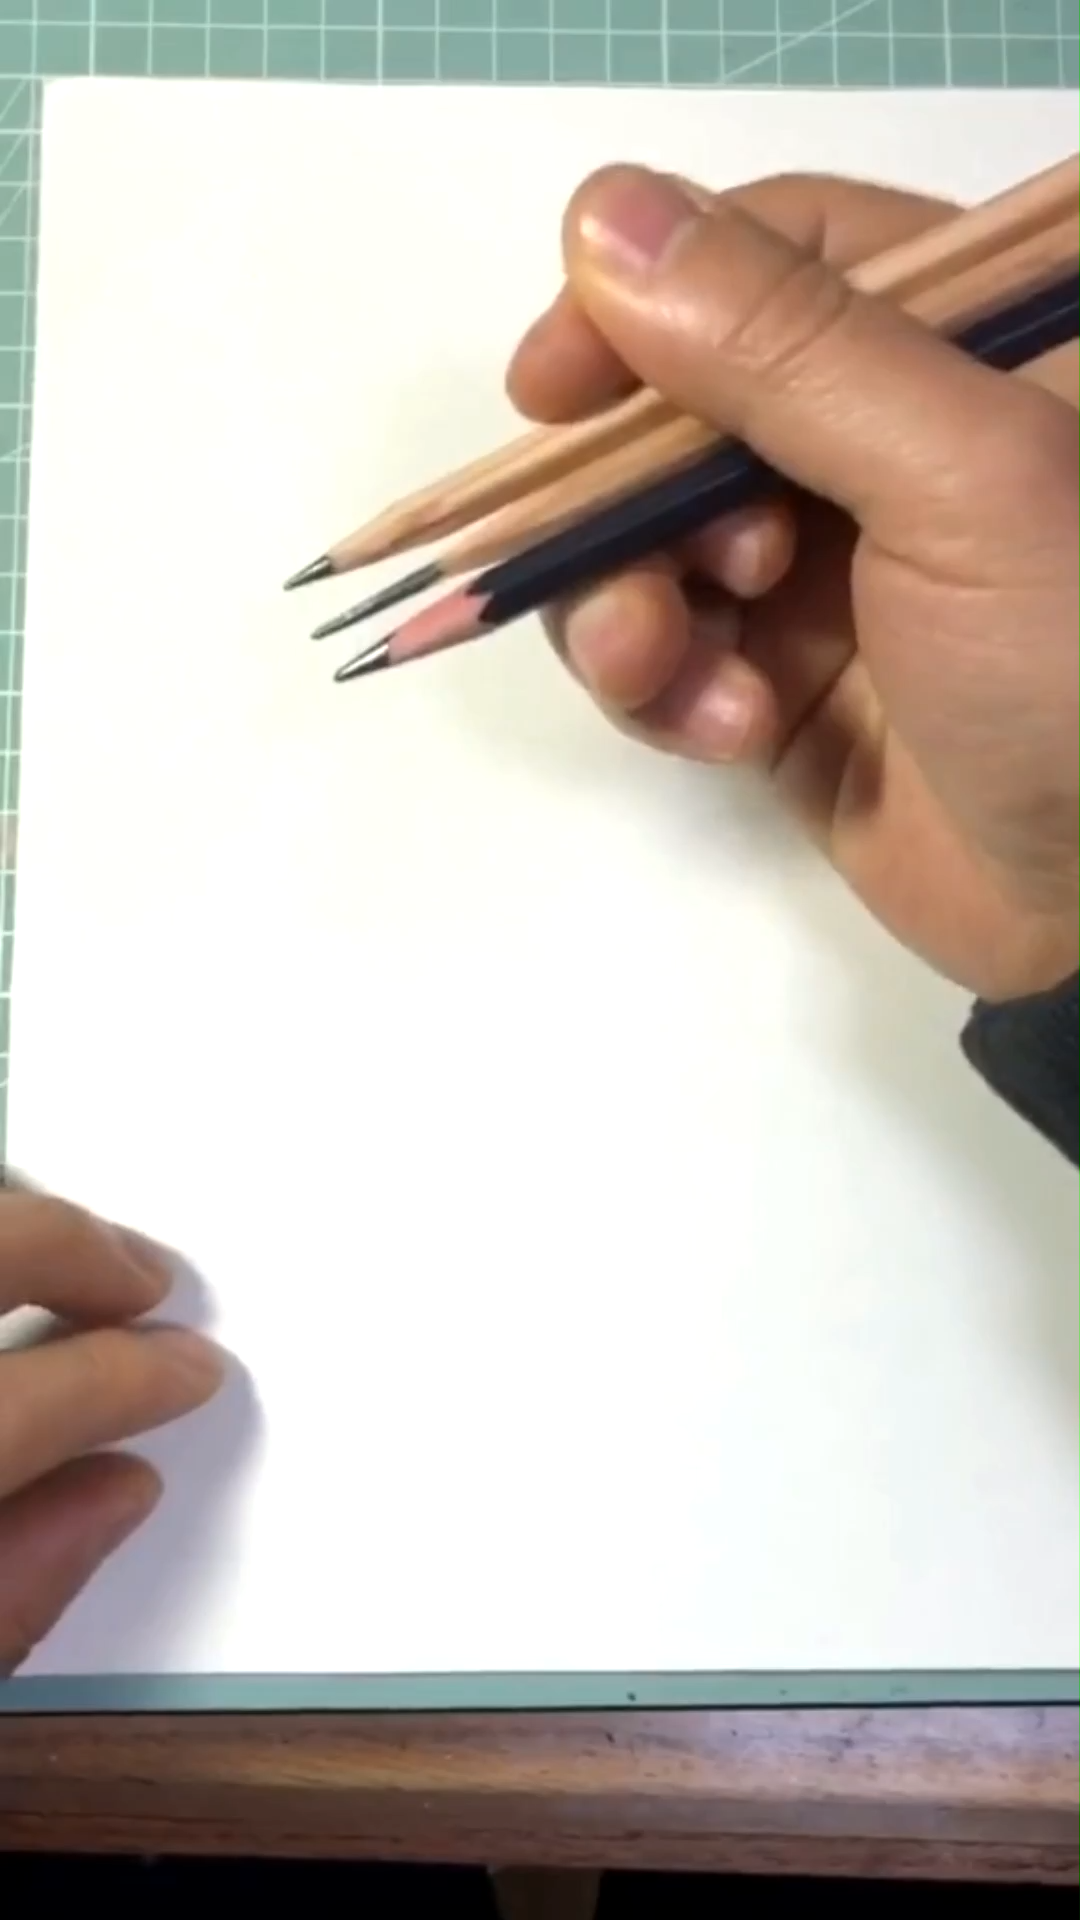 How To Drawing 3D Floating number? It is quite easy if you follow the video. Get your pens and create your art. #3Dart #illusion #3Dnumber #stemactivity #drawing #art